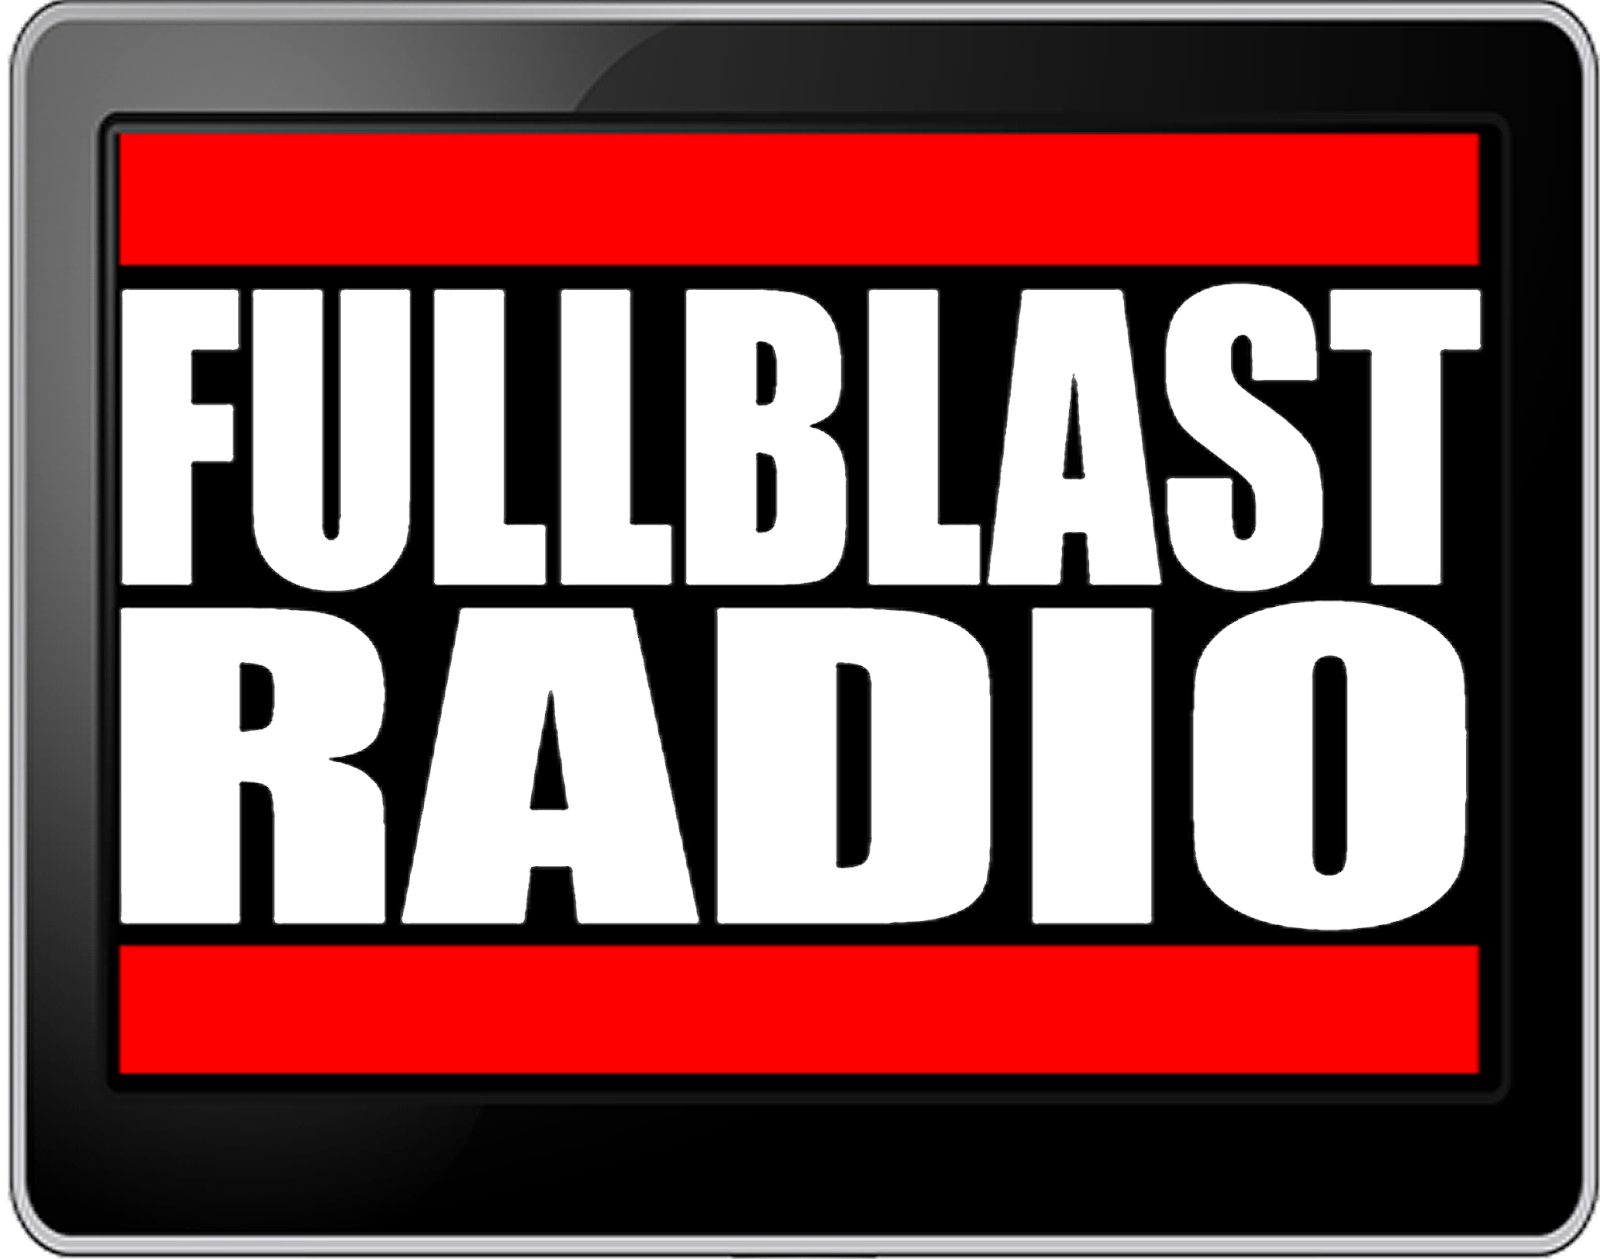 Become a Fullblastradio Member